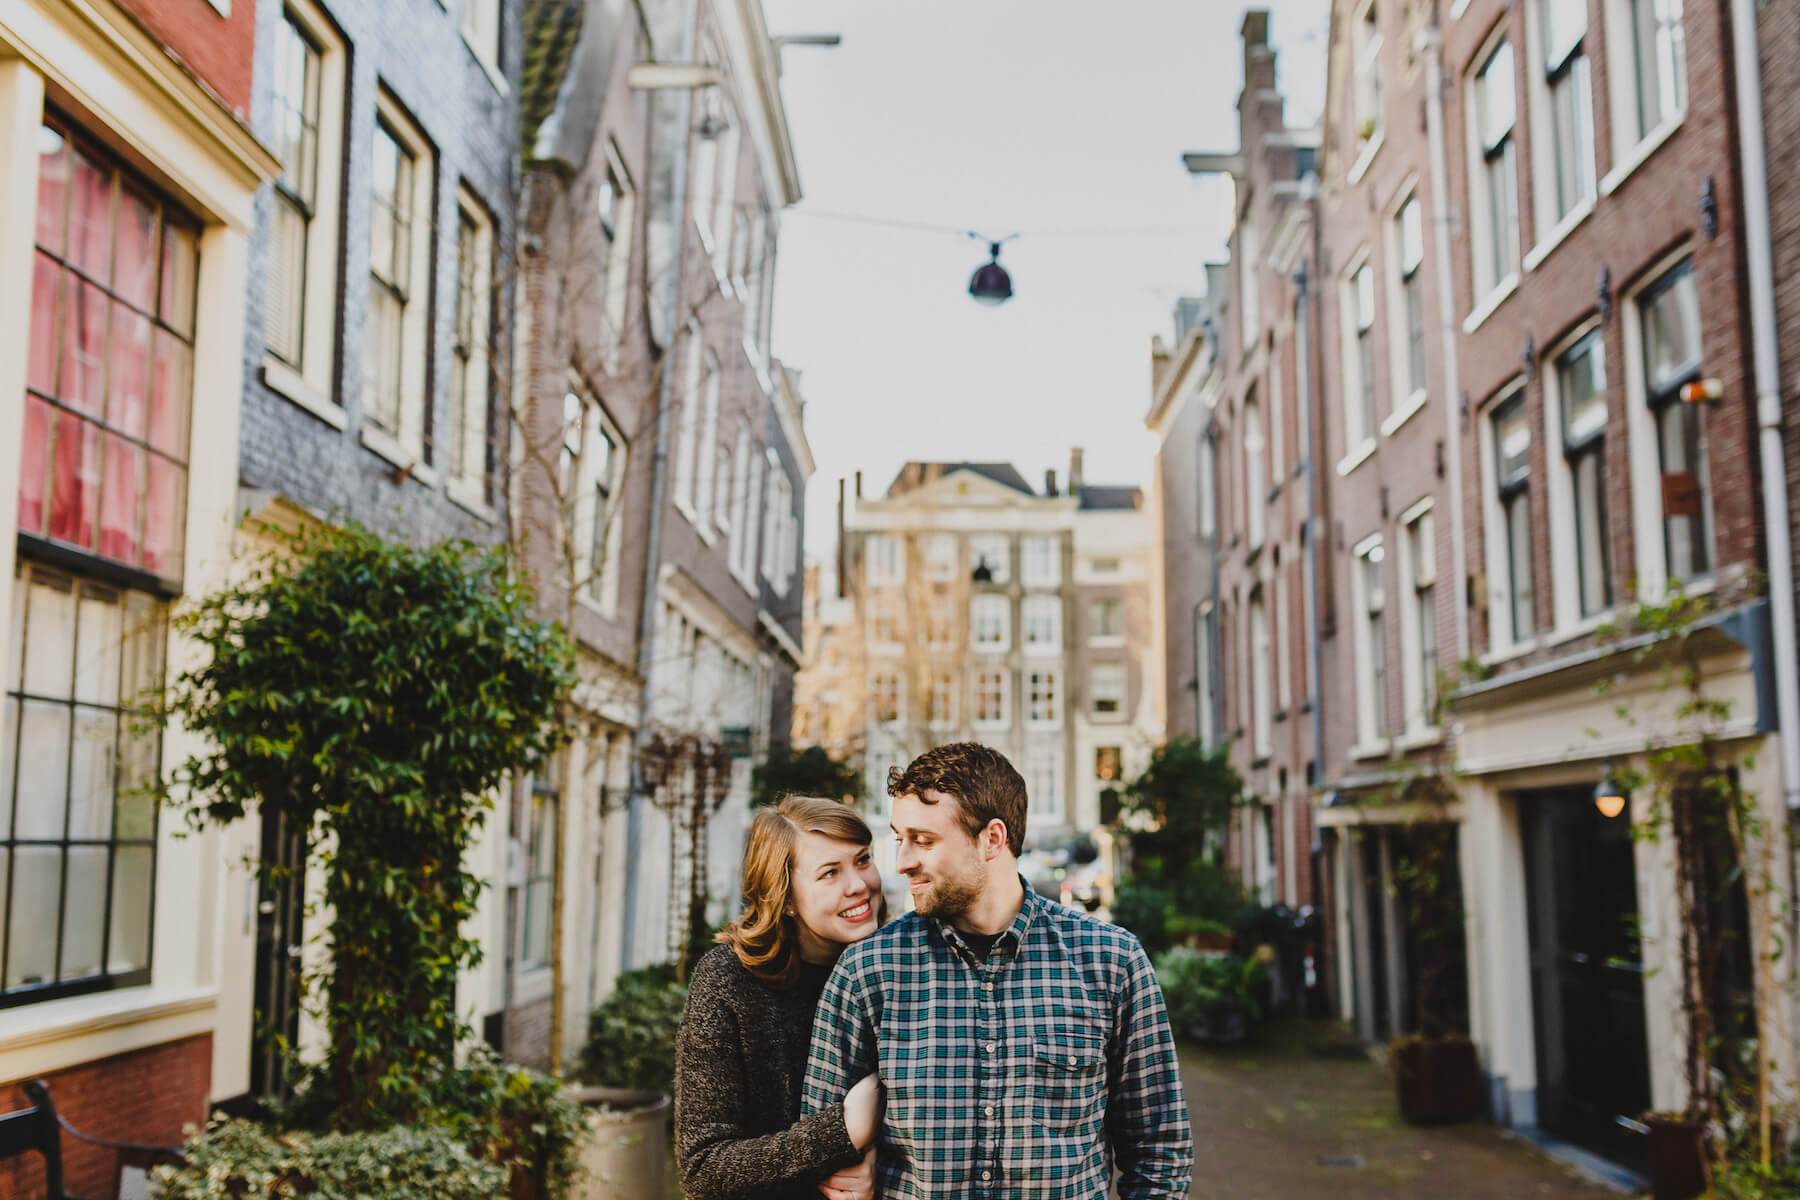 Couple looking at each other lovingly while standing in a small alleyway in Amsterdam, Netherlands